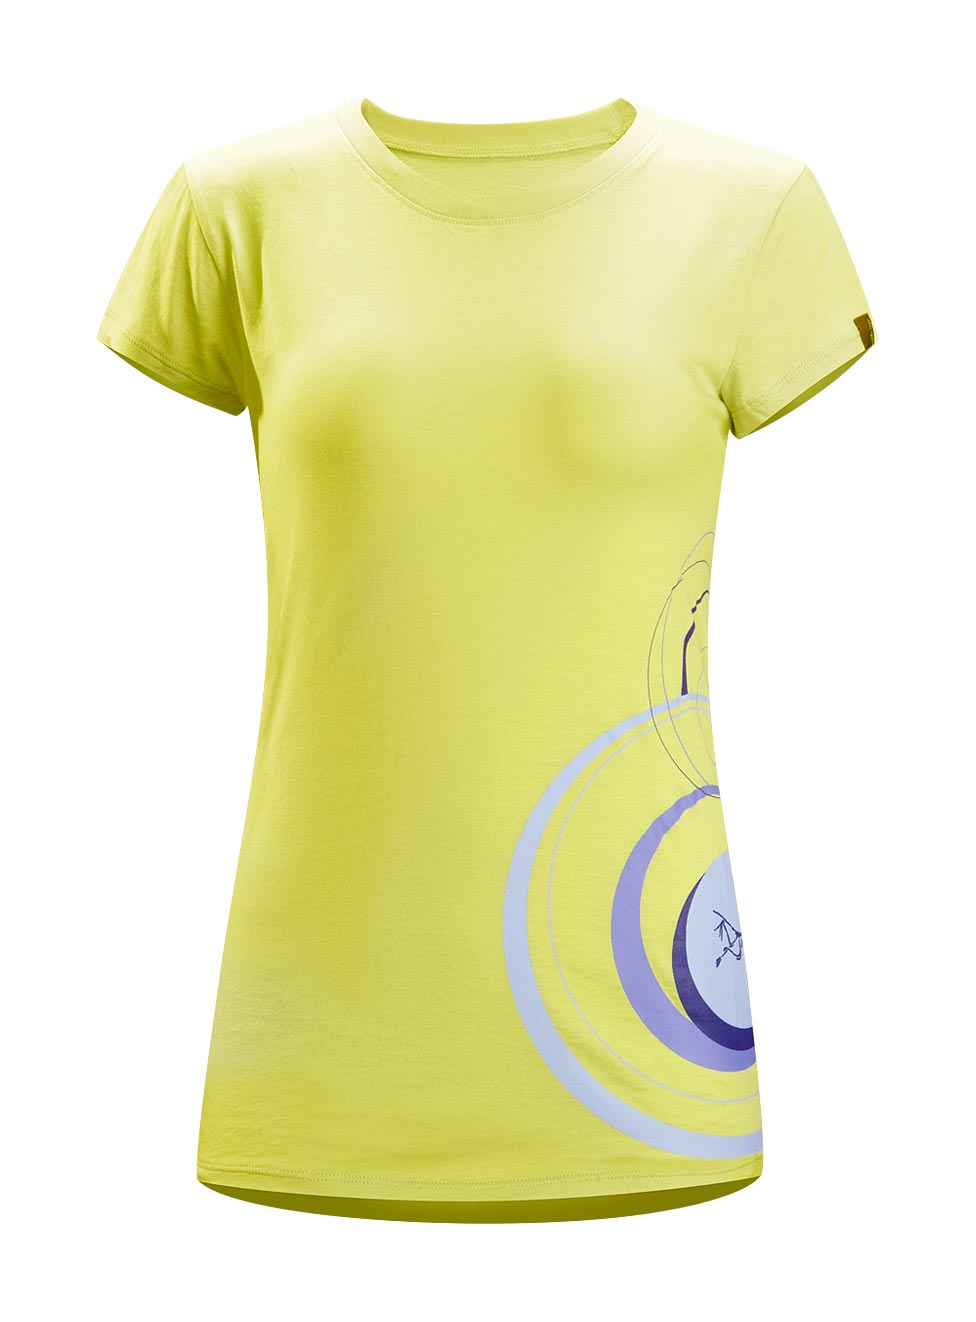 Arcteryx Lemon grass Round Logo T-Shirt - New